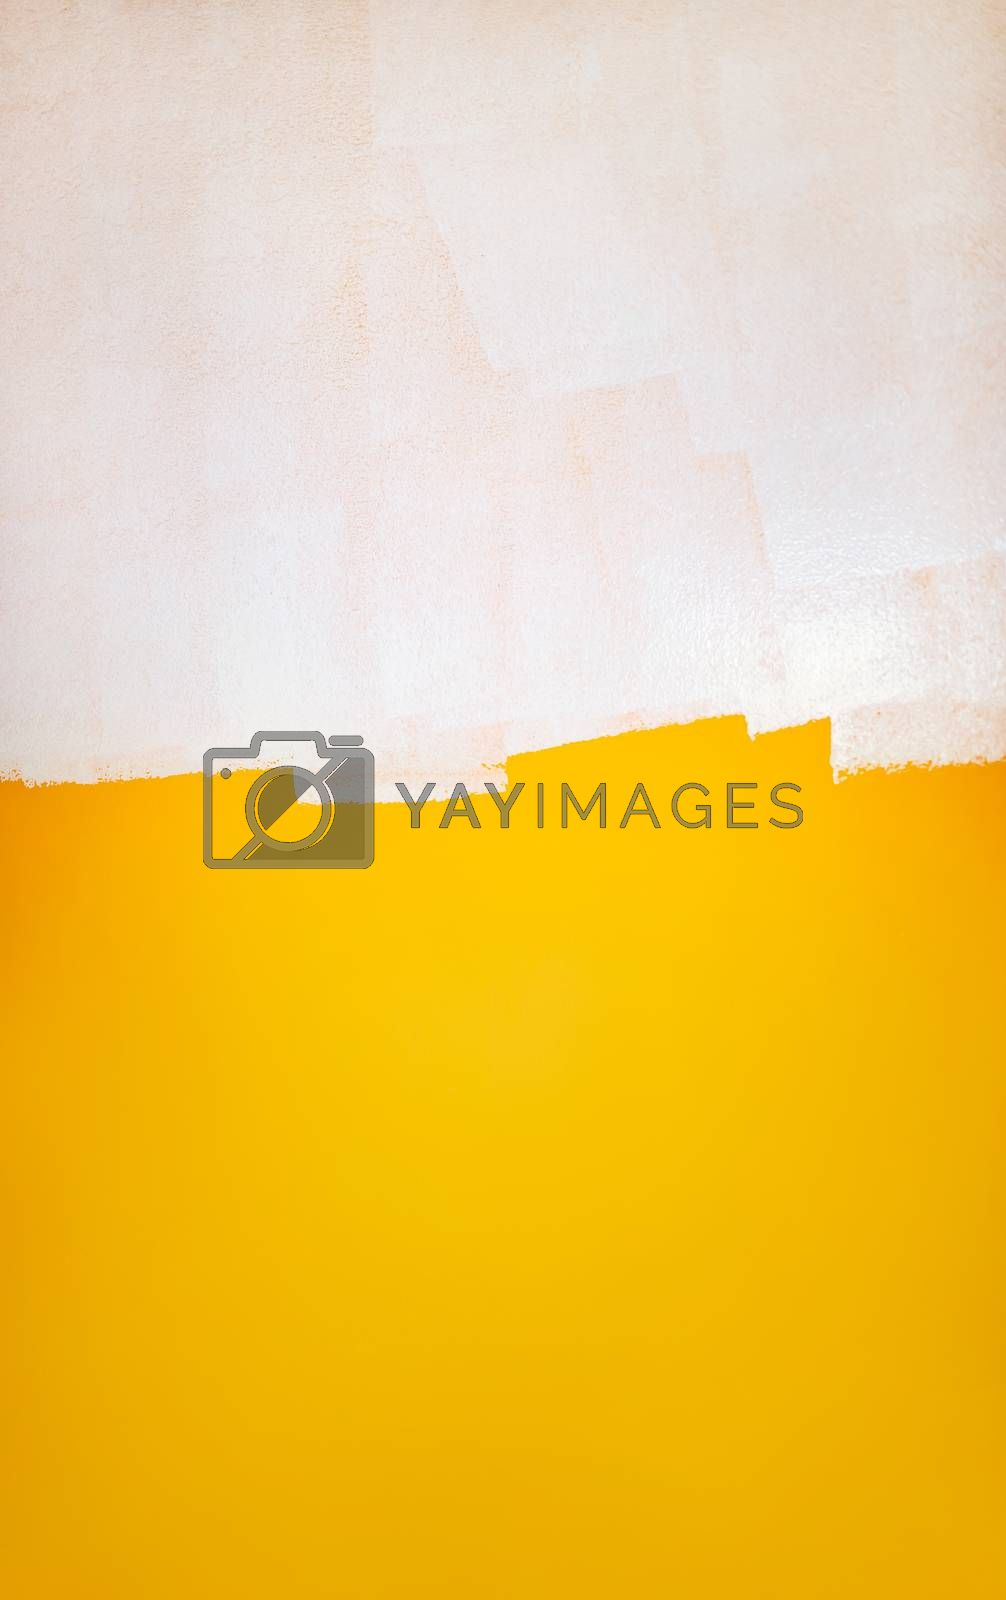 Beautiful Yellow-White Abstract Background. White Brush Strokes on the Yellow Wall. Modern Art. Redesign Concept.